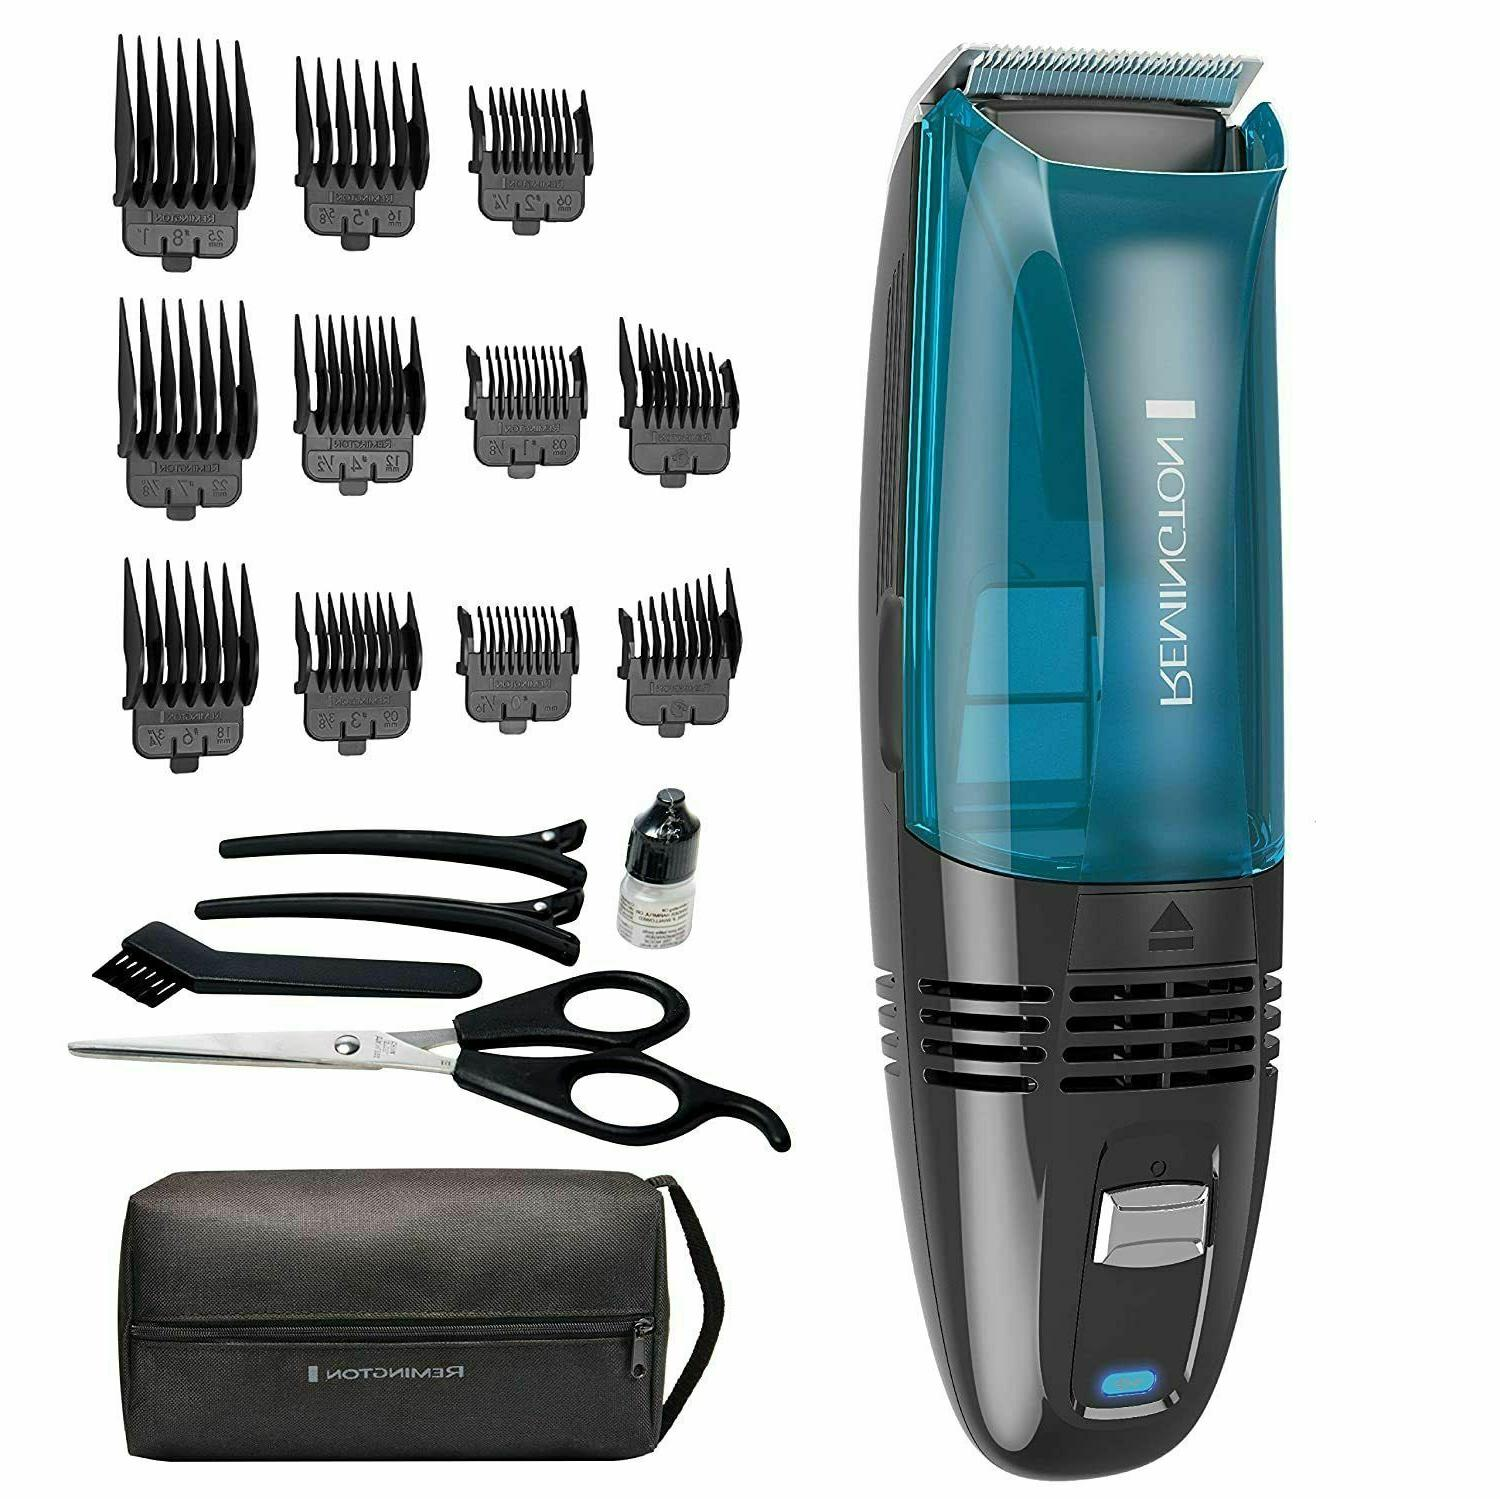 hc6550 cordless vacuum haircut set hair clippers